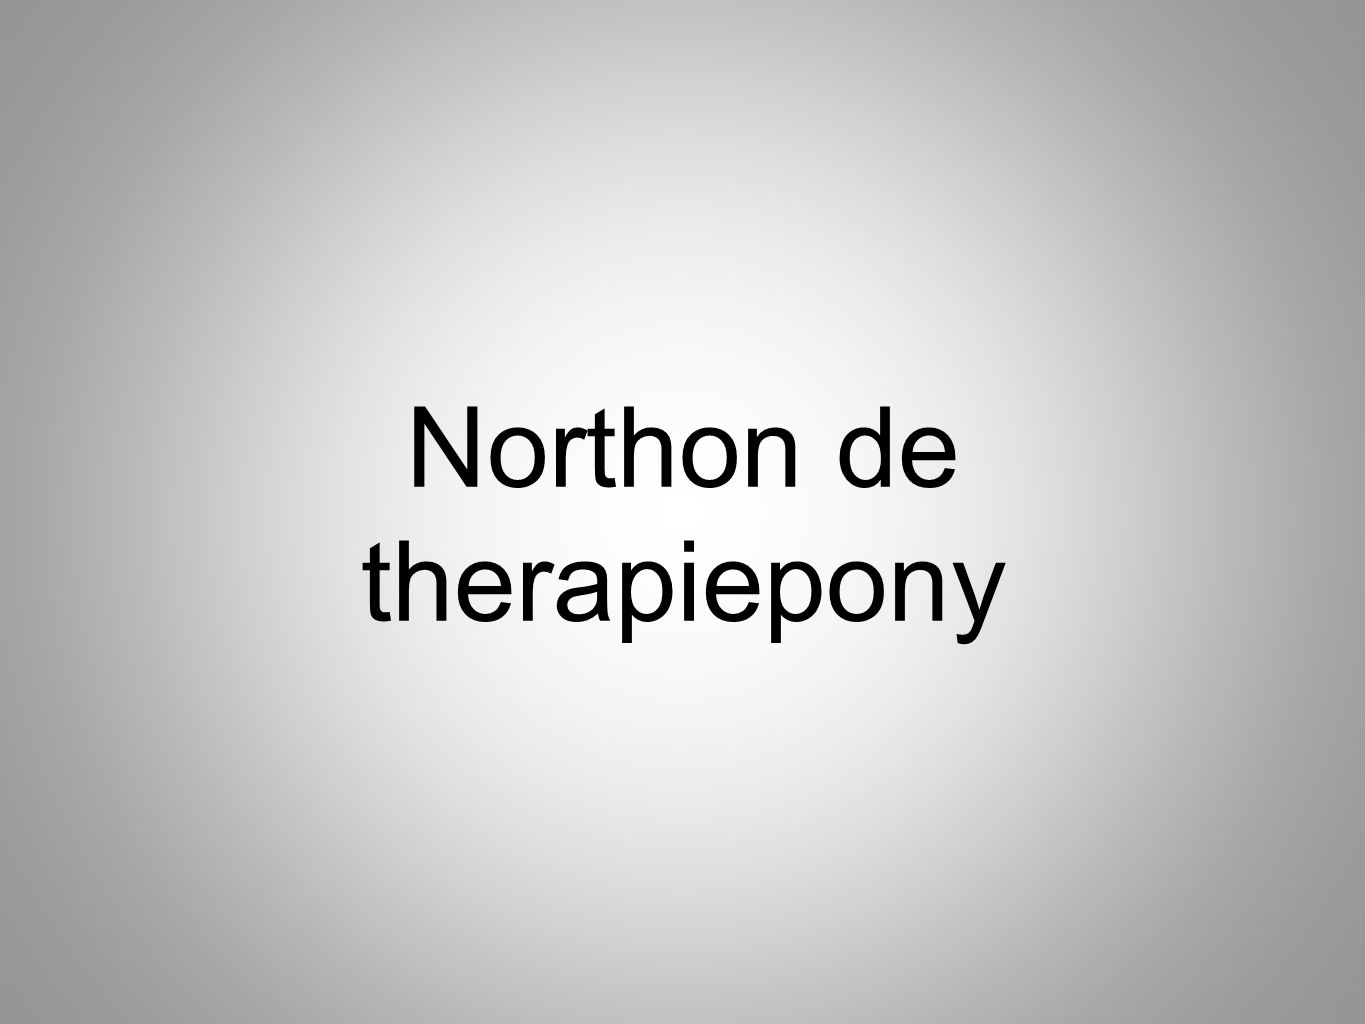 Northon de therapiepony